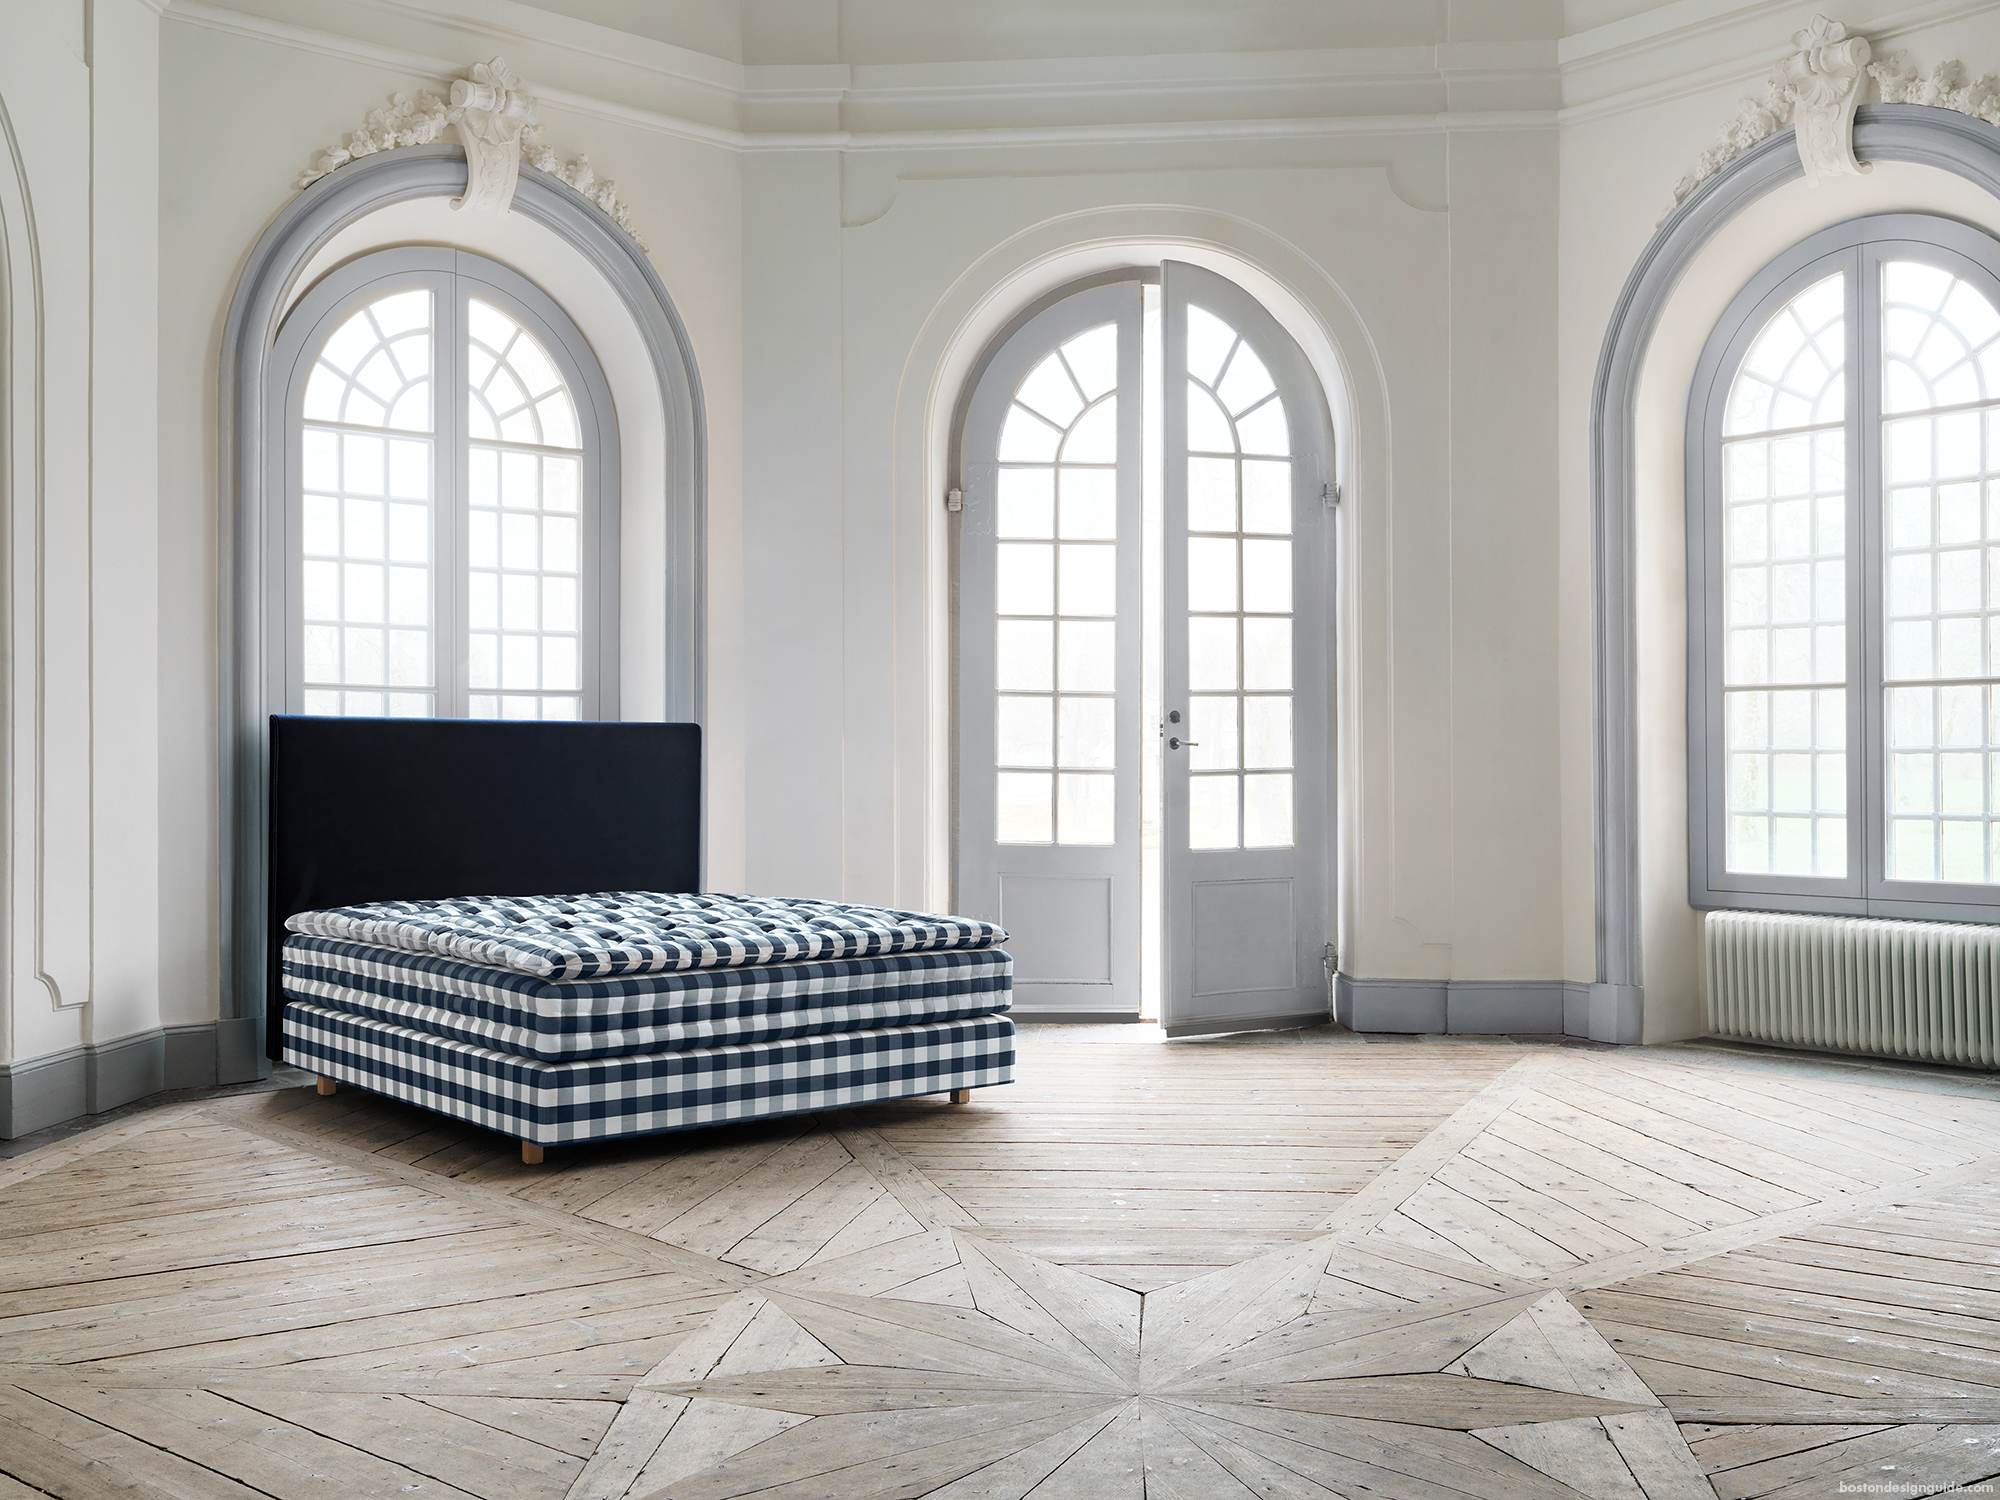 Boston luxury beds boston design guide boston luxury beds view gallery amipublicfo Choice Image